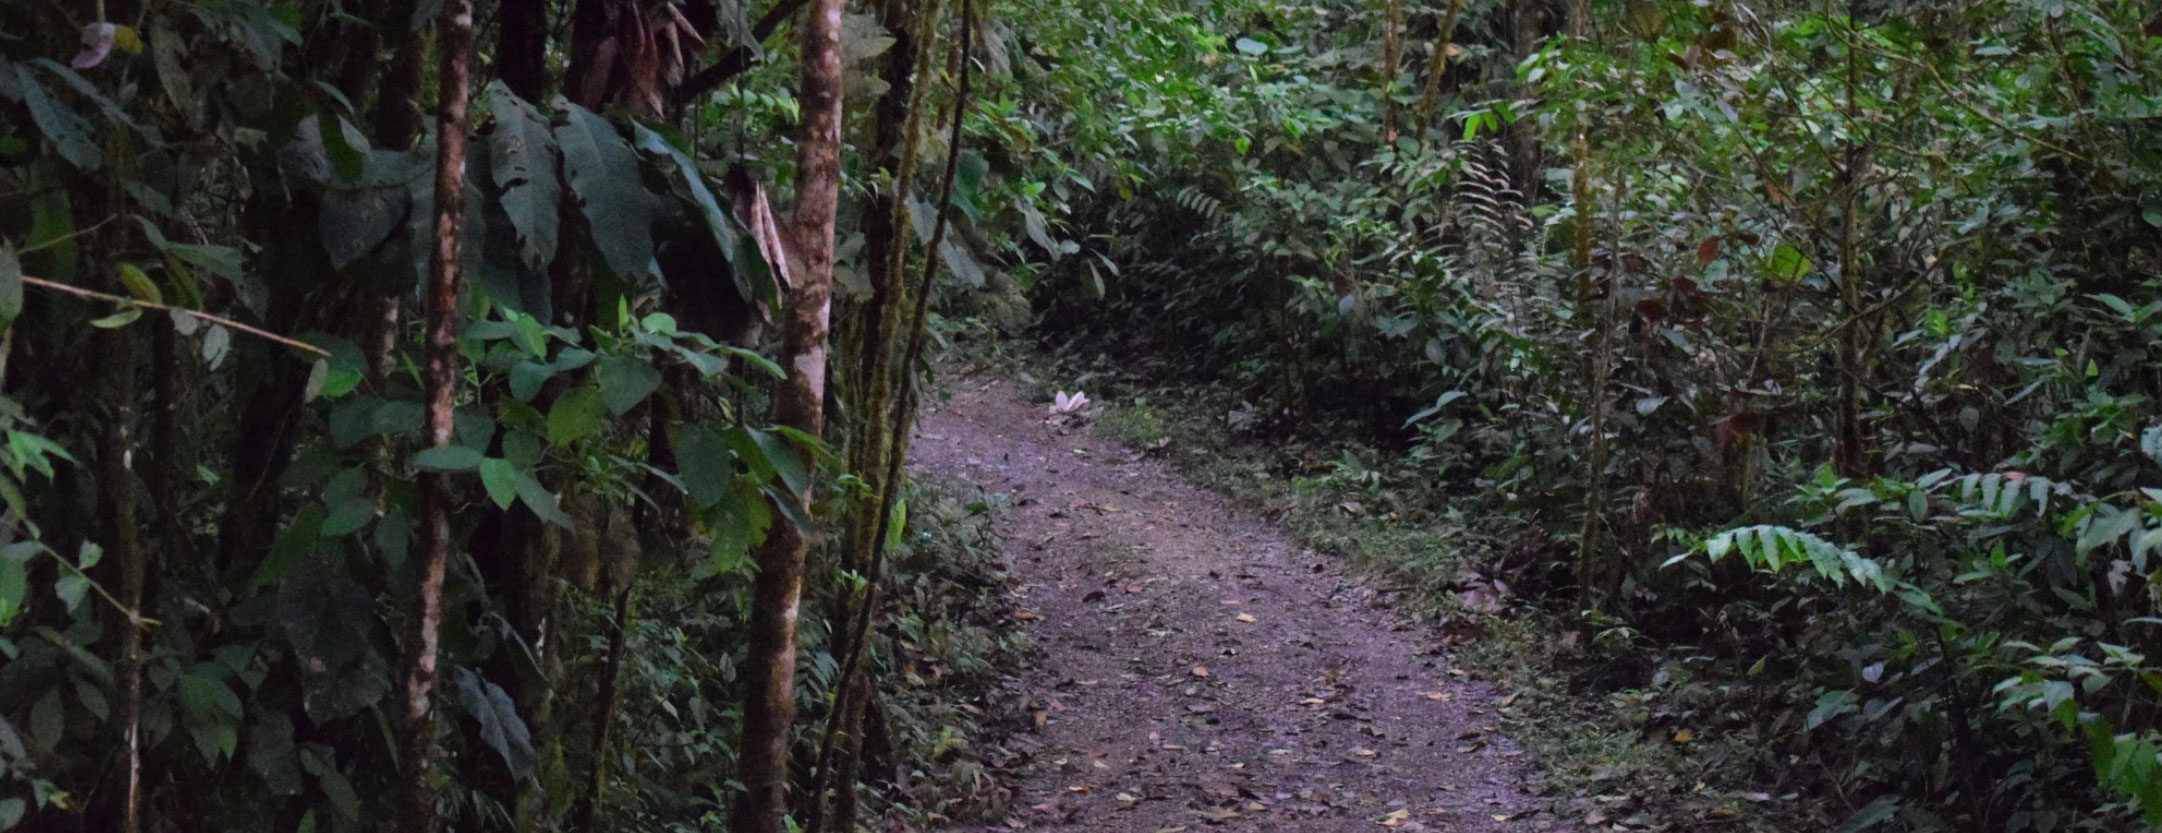 path through rainforest